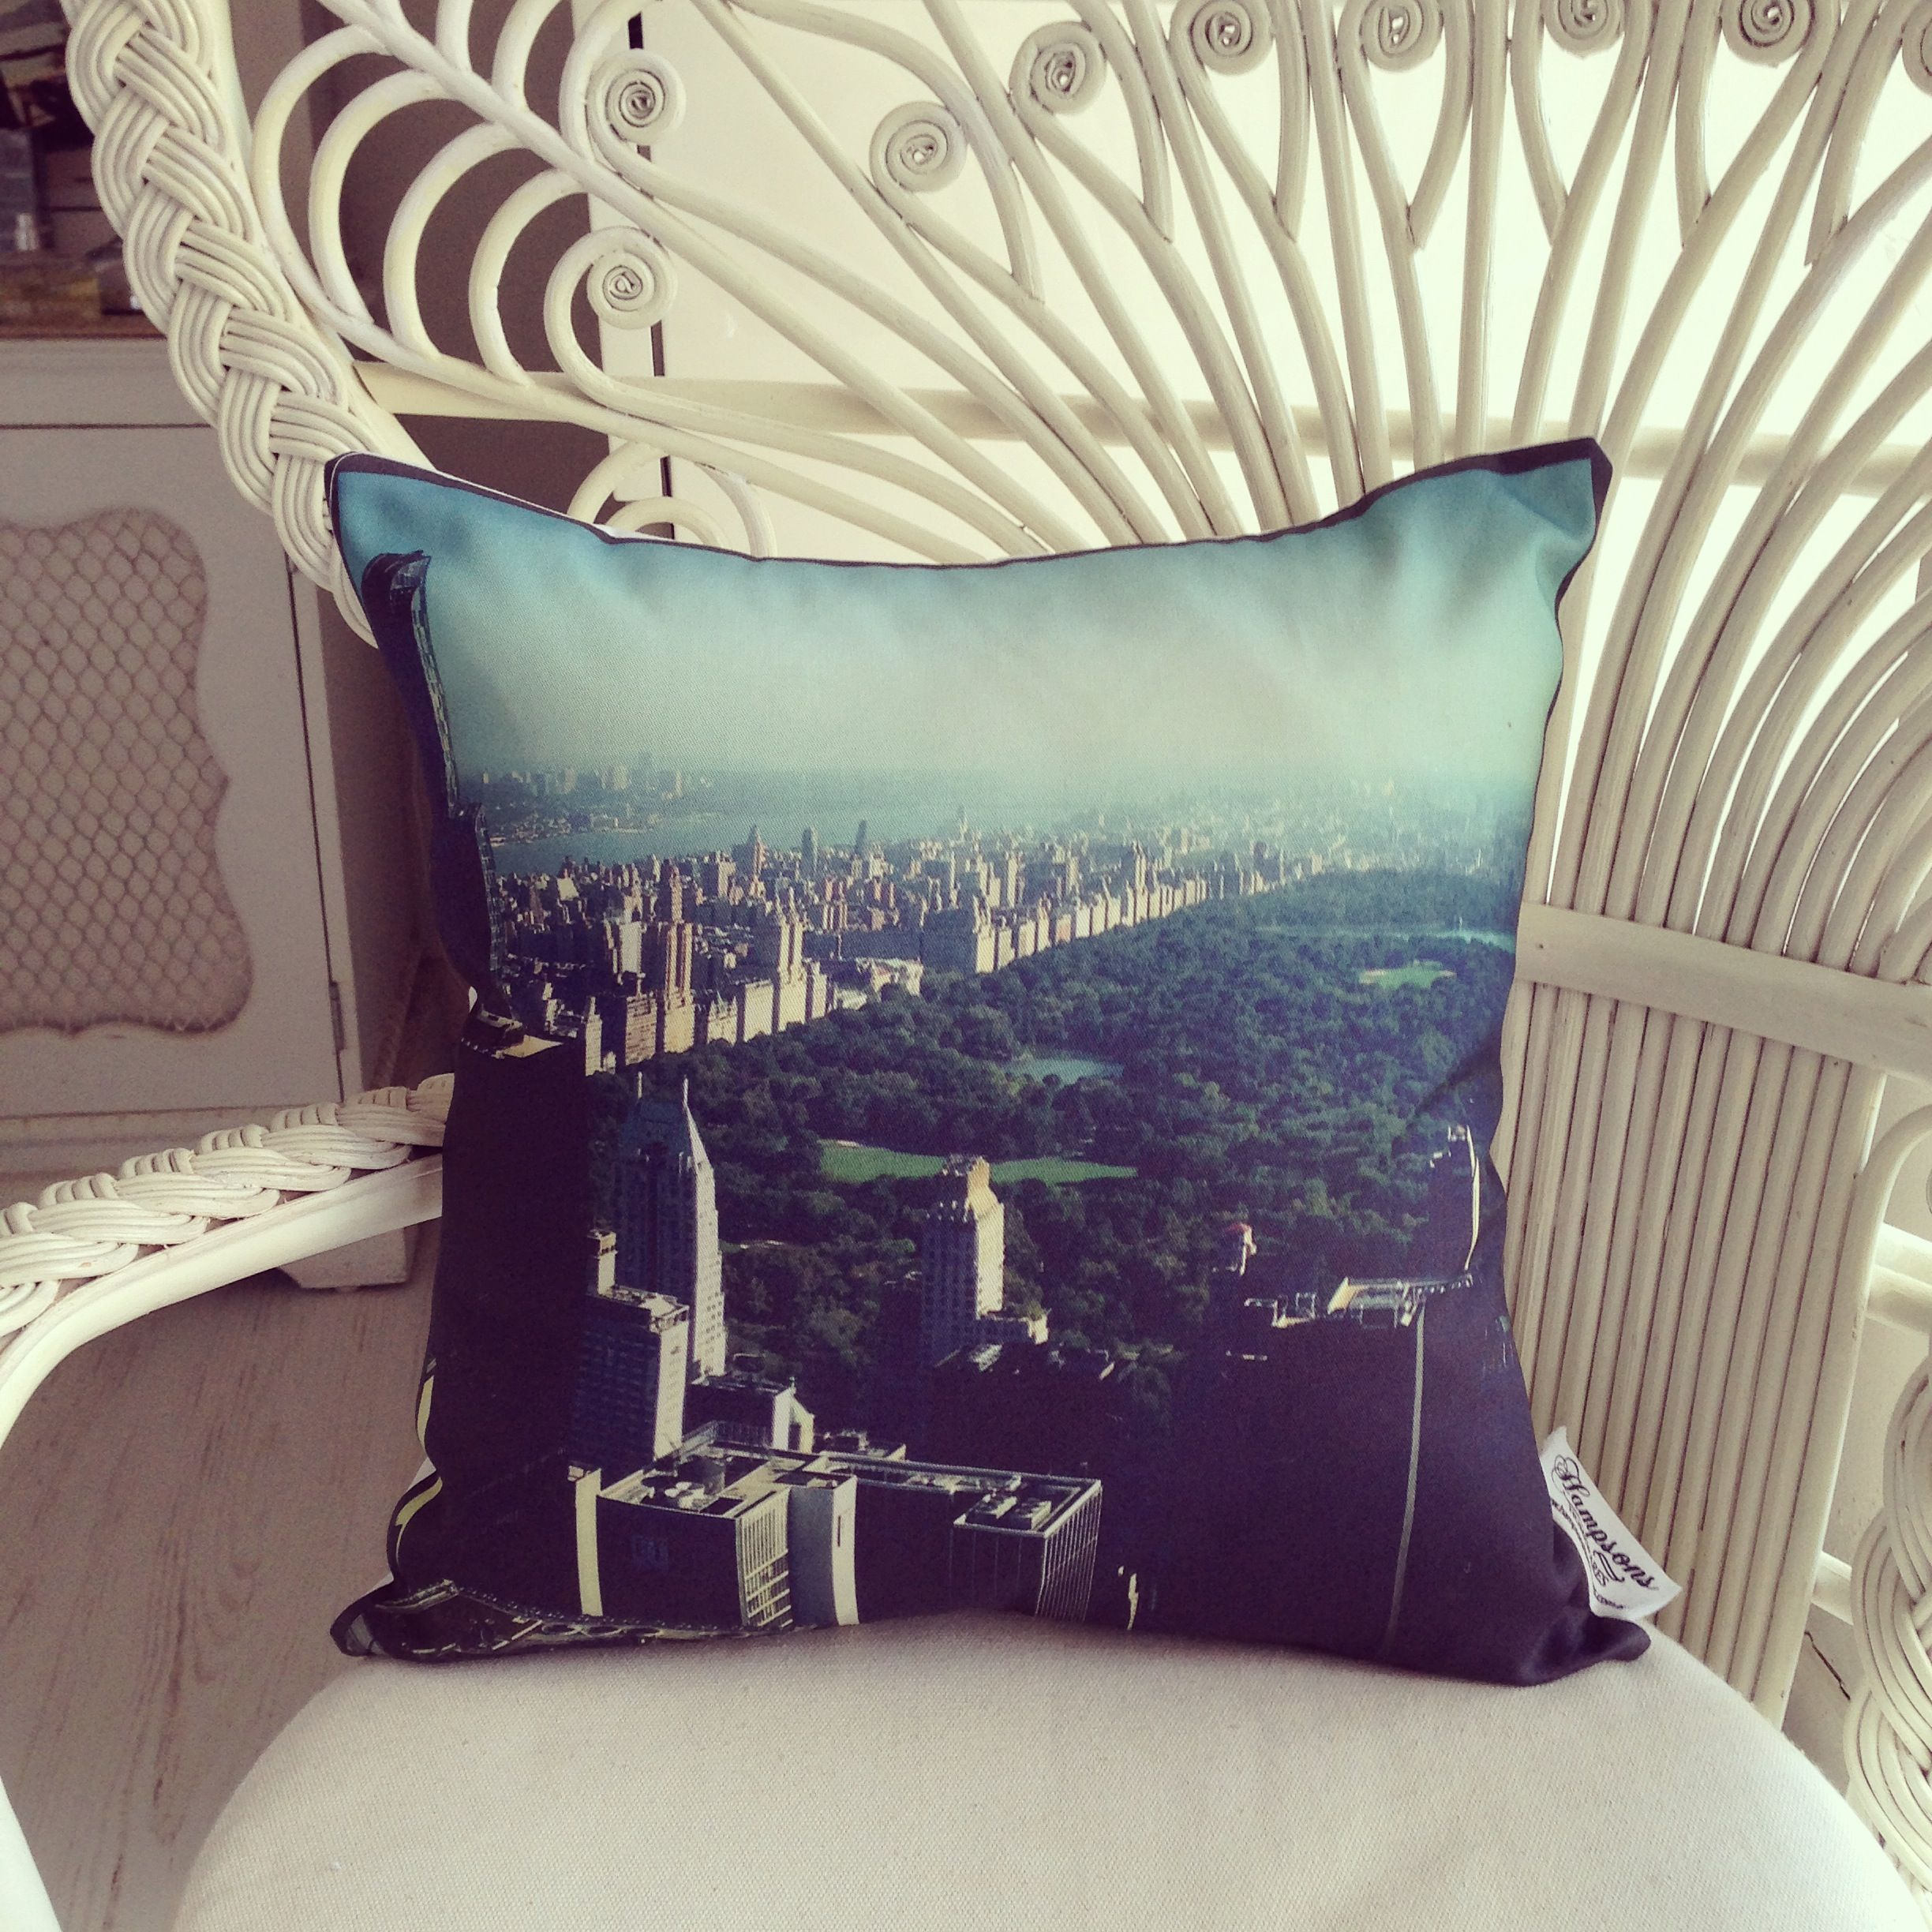 NYC on a cushion.  We took this shot standing at the top of the Rock, the most amazing view over Central Park! LOVE this cushion :-) x